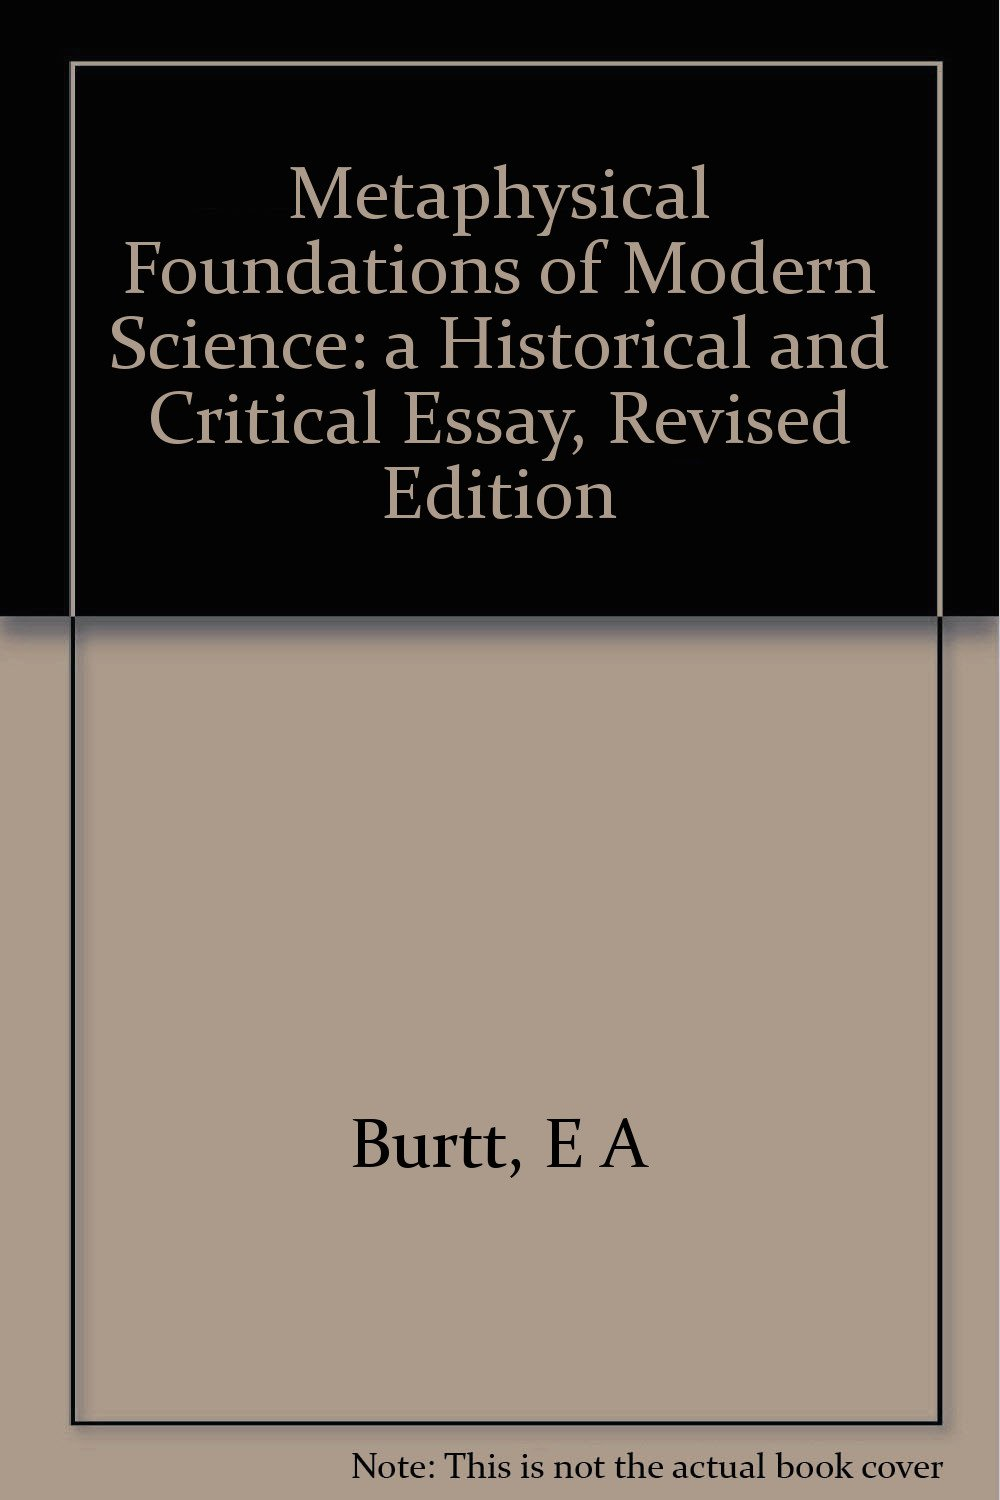 the metaphysical foundations of modern physical science a  the metaphysical foundations of modern physical science a historical and  critical essay revised edition hardcover